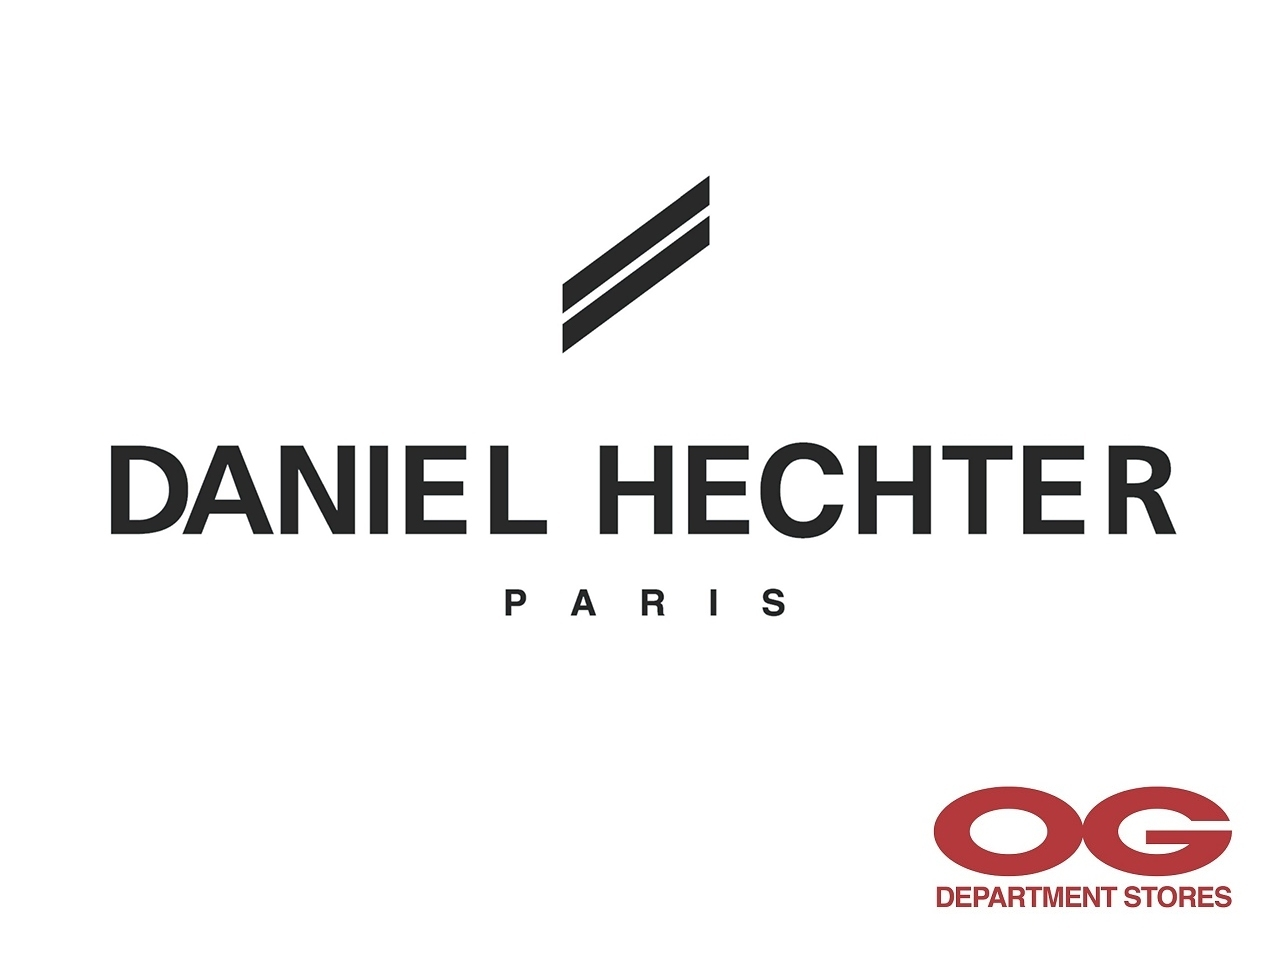 DANIEL HECHTER All Regular-Priced Men's Apparel @ 20% + 20% off